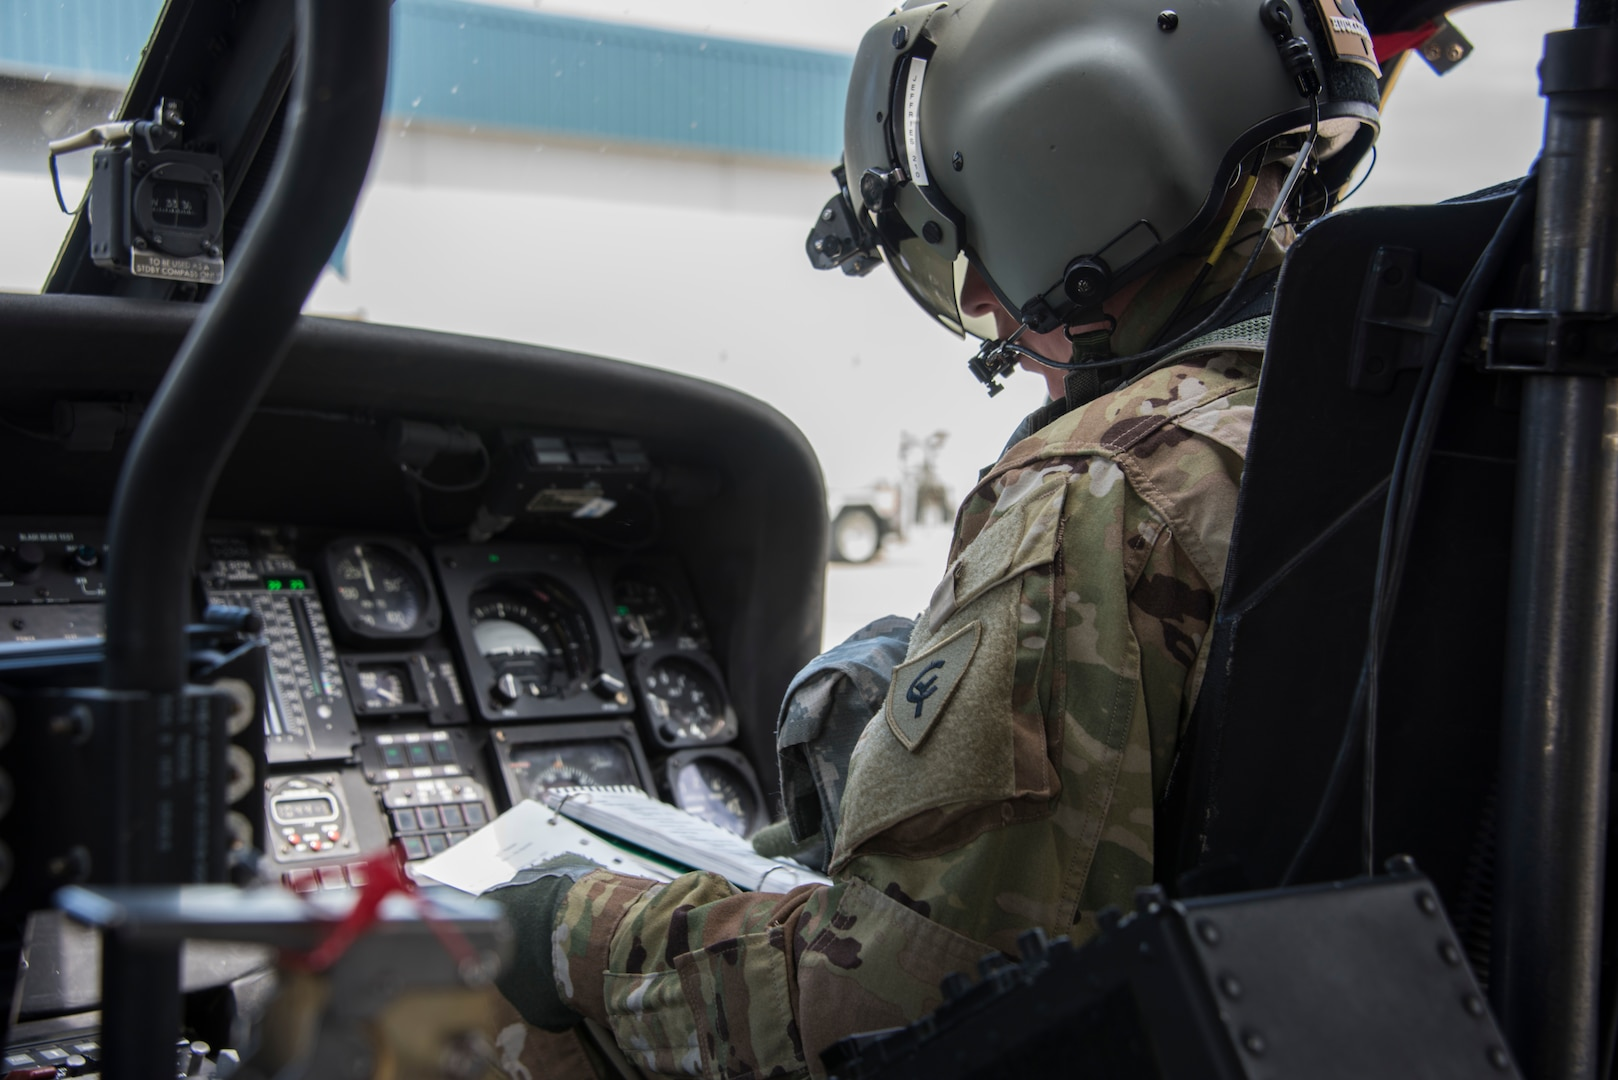 An Indiana National Guard UH-60 Black Hawk pilot conducts preflight checks before a combat search-and-rescue training exercise in Miami County, Indiana, June 18, 2020. The mock scenario utilized a UH-60 Black Hawk helicopter from the Gary Army Aviation Support Facility and multiple A-10C Thunderbolt II fighter jets from the 122nd Fighter Wing, Fort Wayne, to retrieve personnel from a downed aircraft inside hostile territory.